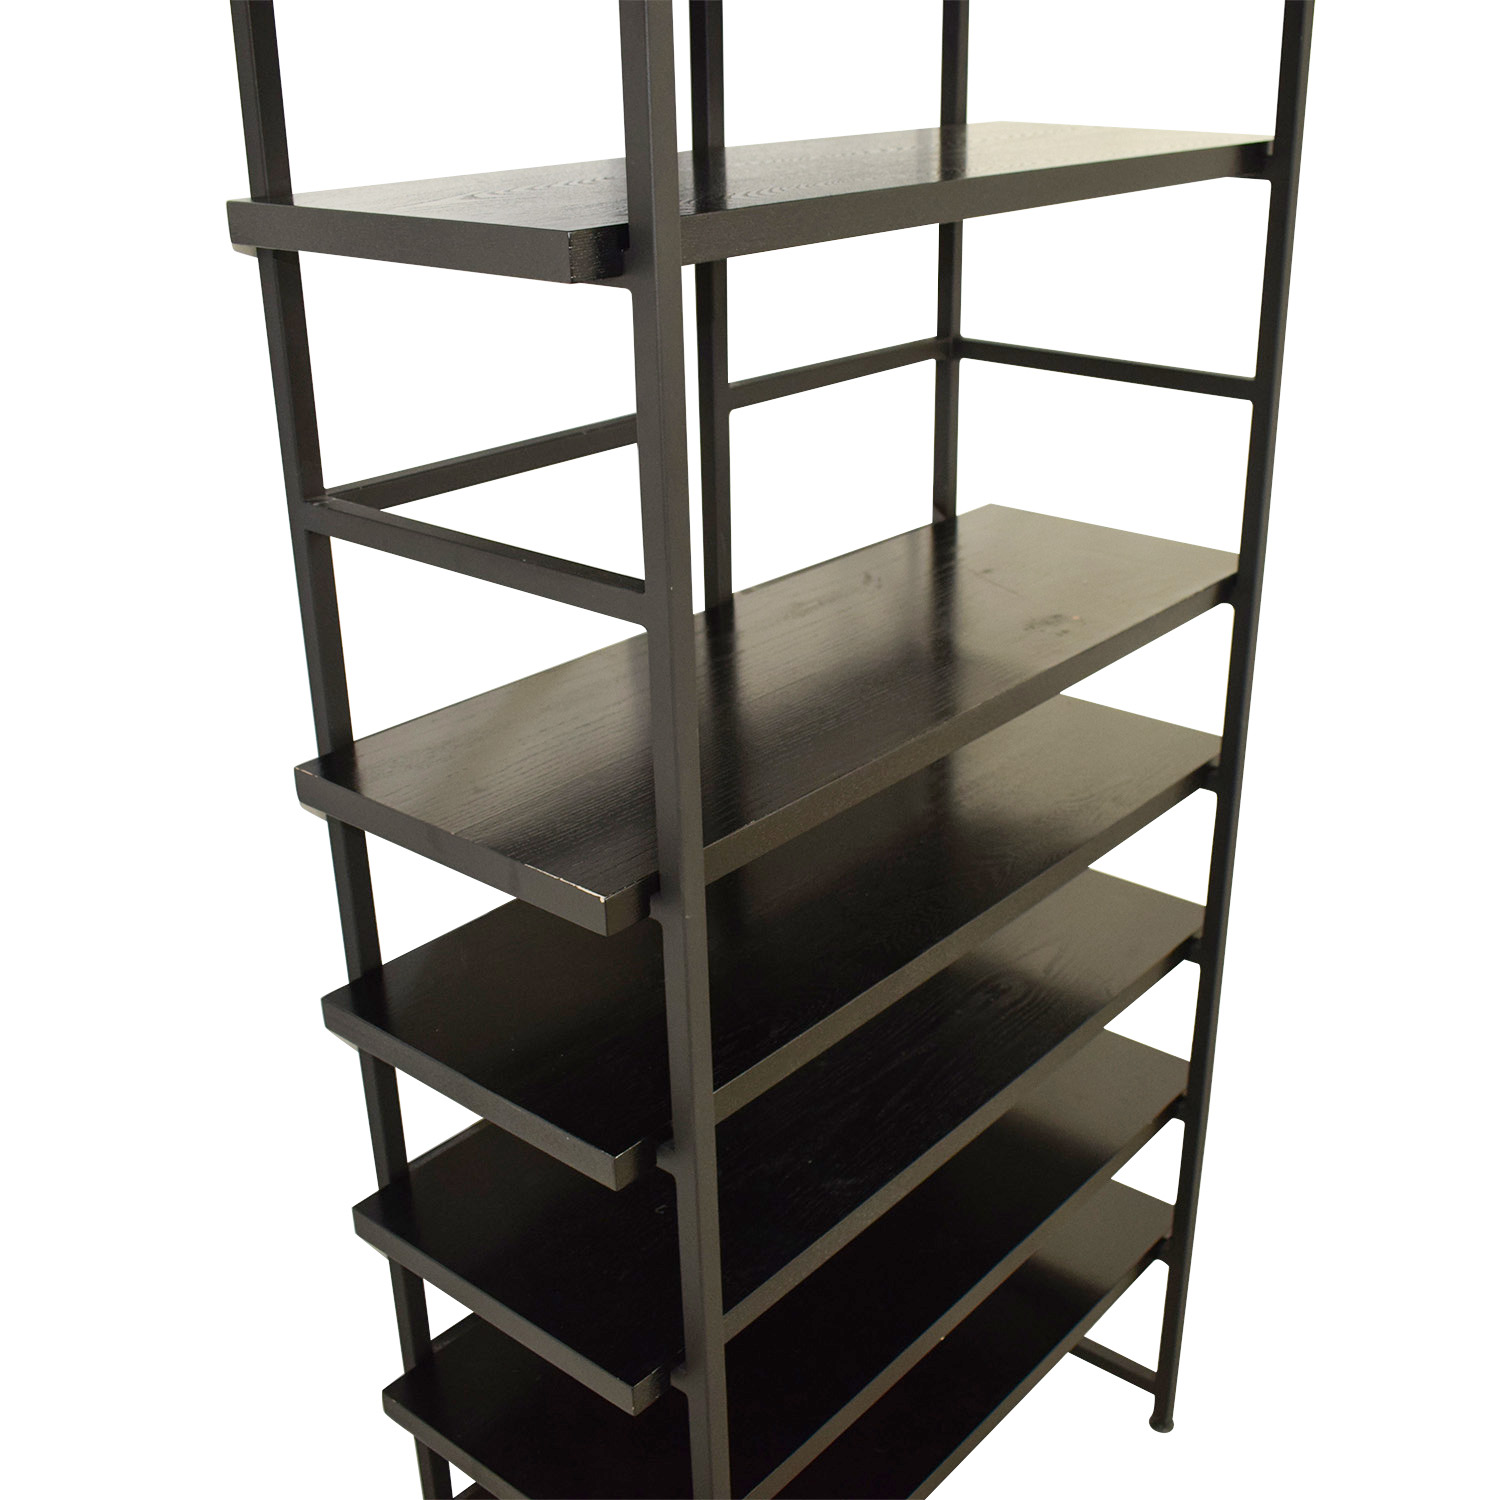 The Container Store The Container Store Black Shelf Bookcases & Shelving